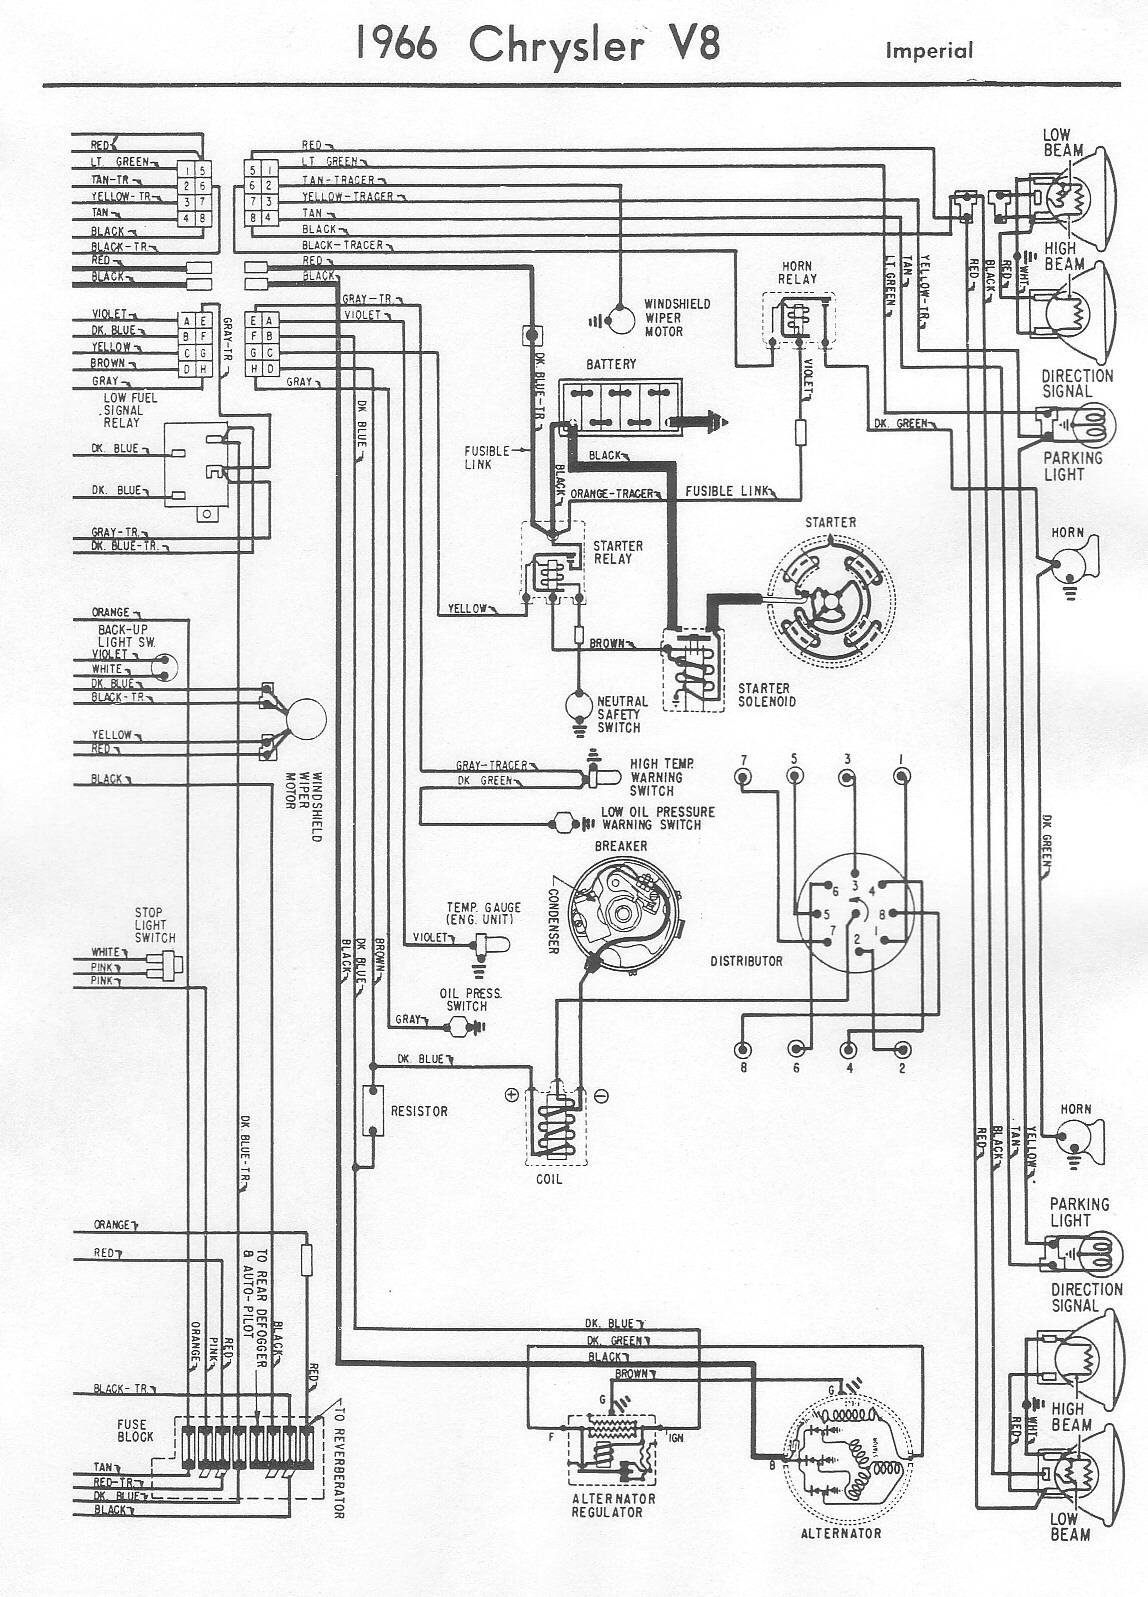 1971 plymouth duster wiring diagram cluster in addition chevy 3 wire rh bsmdot co 1975 plymouth duster wiring diagram 1972 plymouth duster wiring diagram